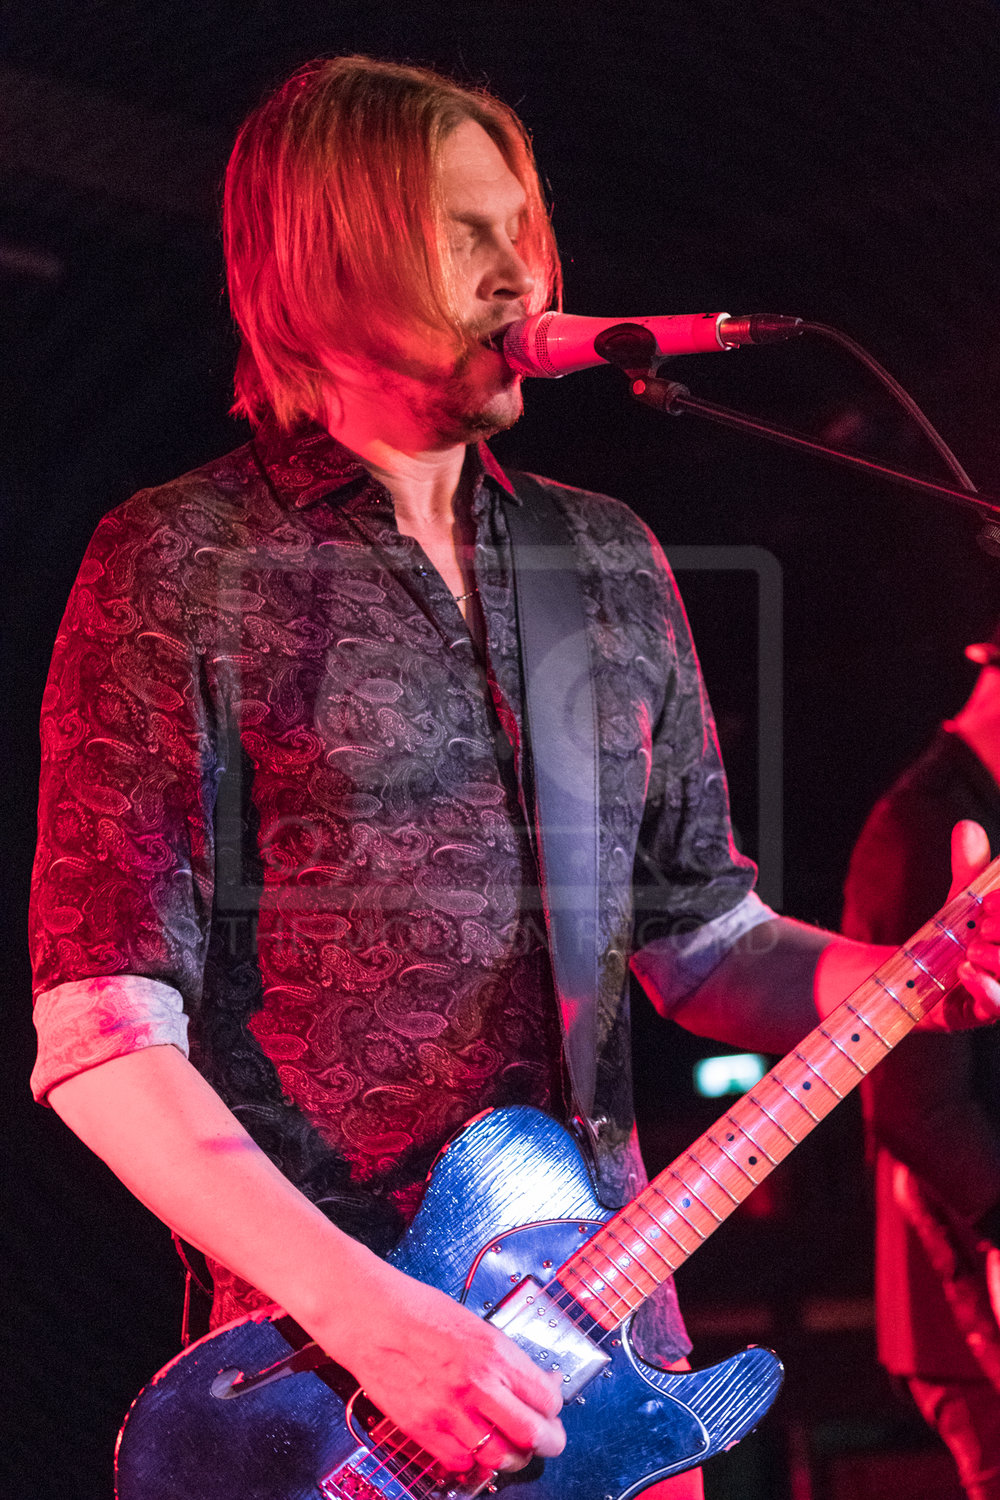 7 - von hertzen brothers - Newcastle University SU, Newcastle - 08-12-18 Picture by Will Gorman Photo.JPG